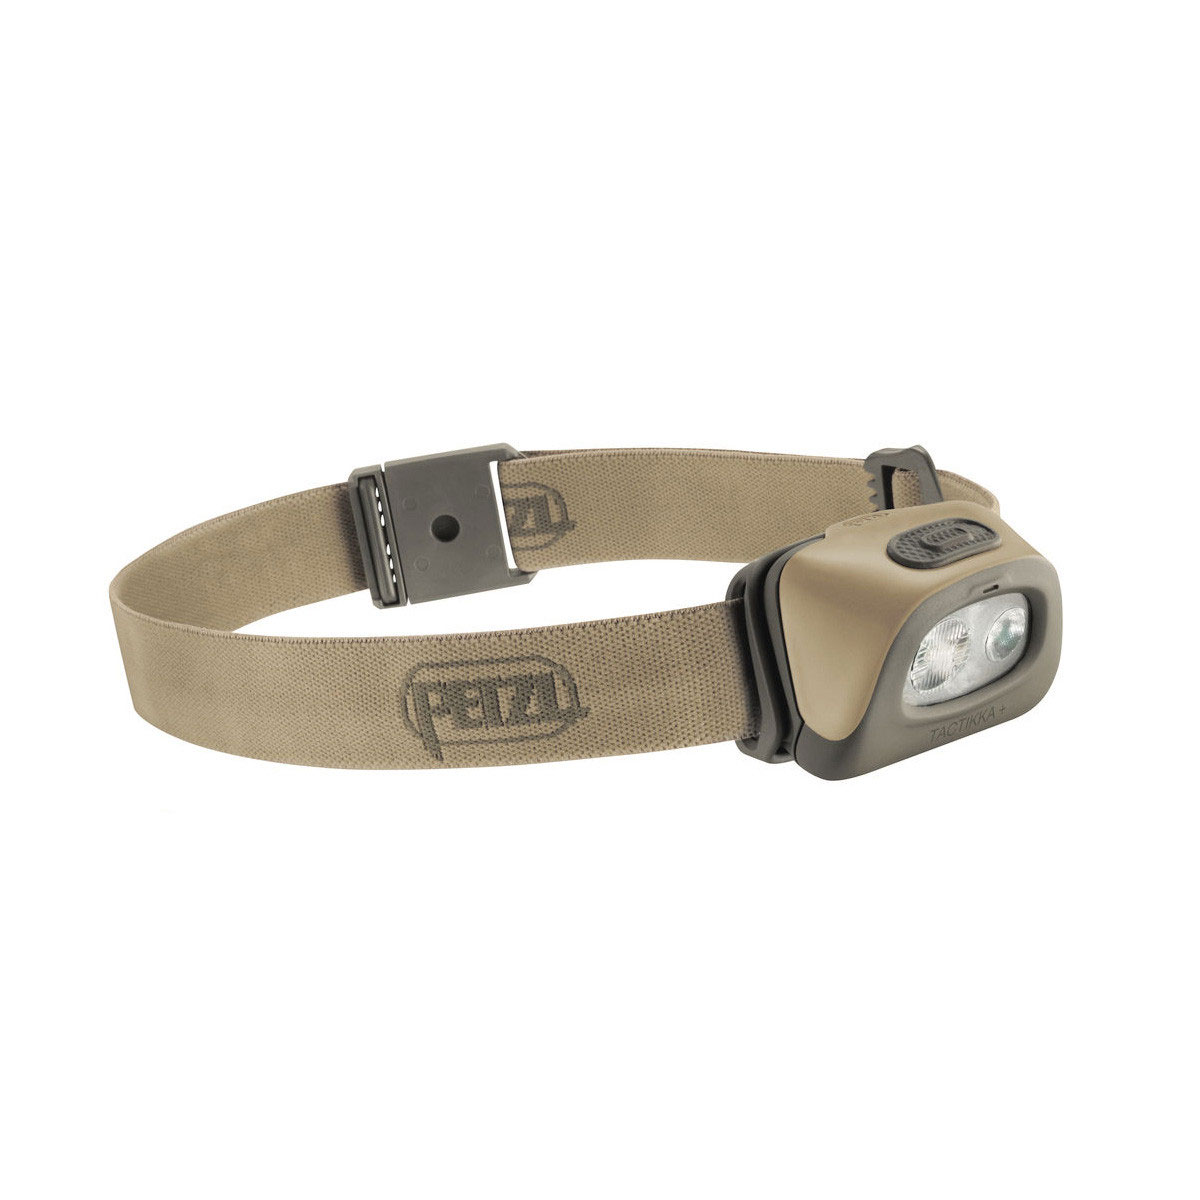 PETZL TACTIKKA PLUS 250 LUMEN HEADLAMP main photo.